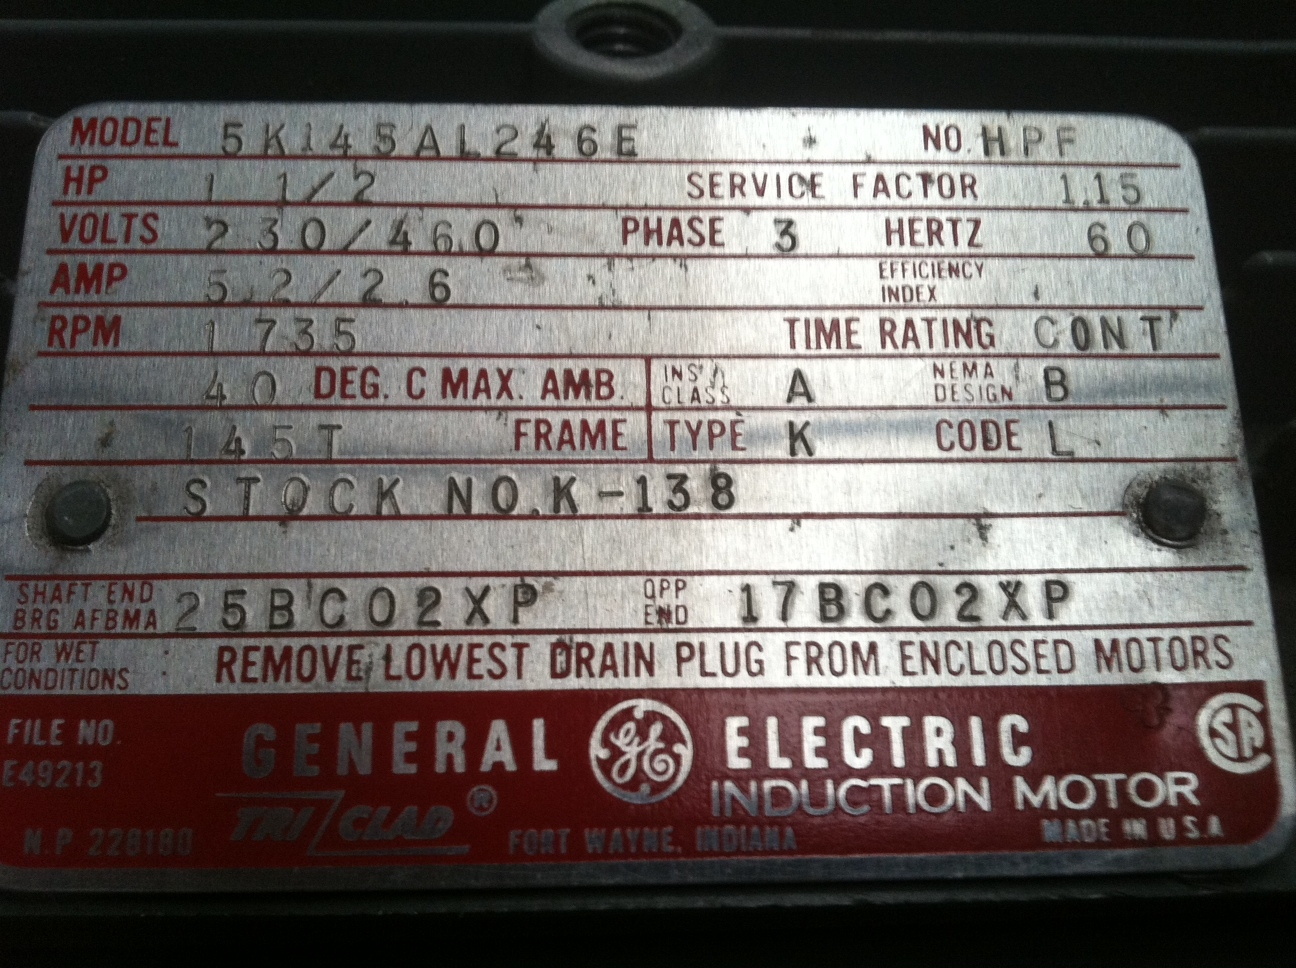 Name Platw 480 Motor Wiring Diagram Basic Guide 12 Lead 3 Phase On Ev Ac I Purchased A Ge Ebay And It Has Come With No